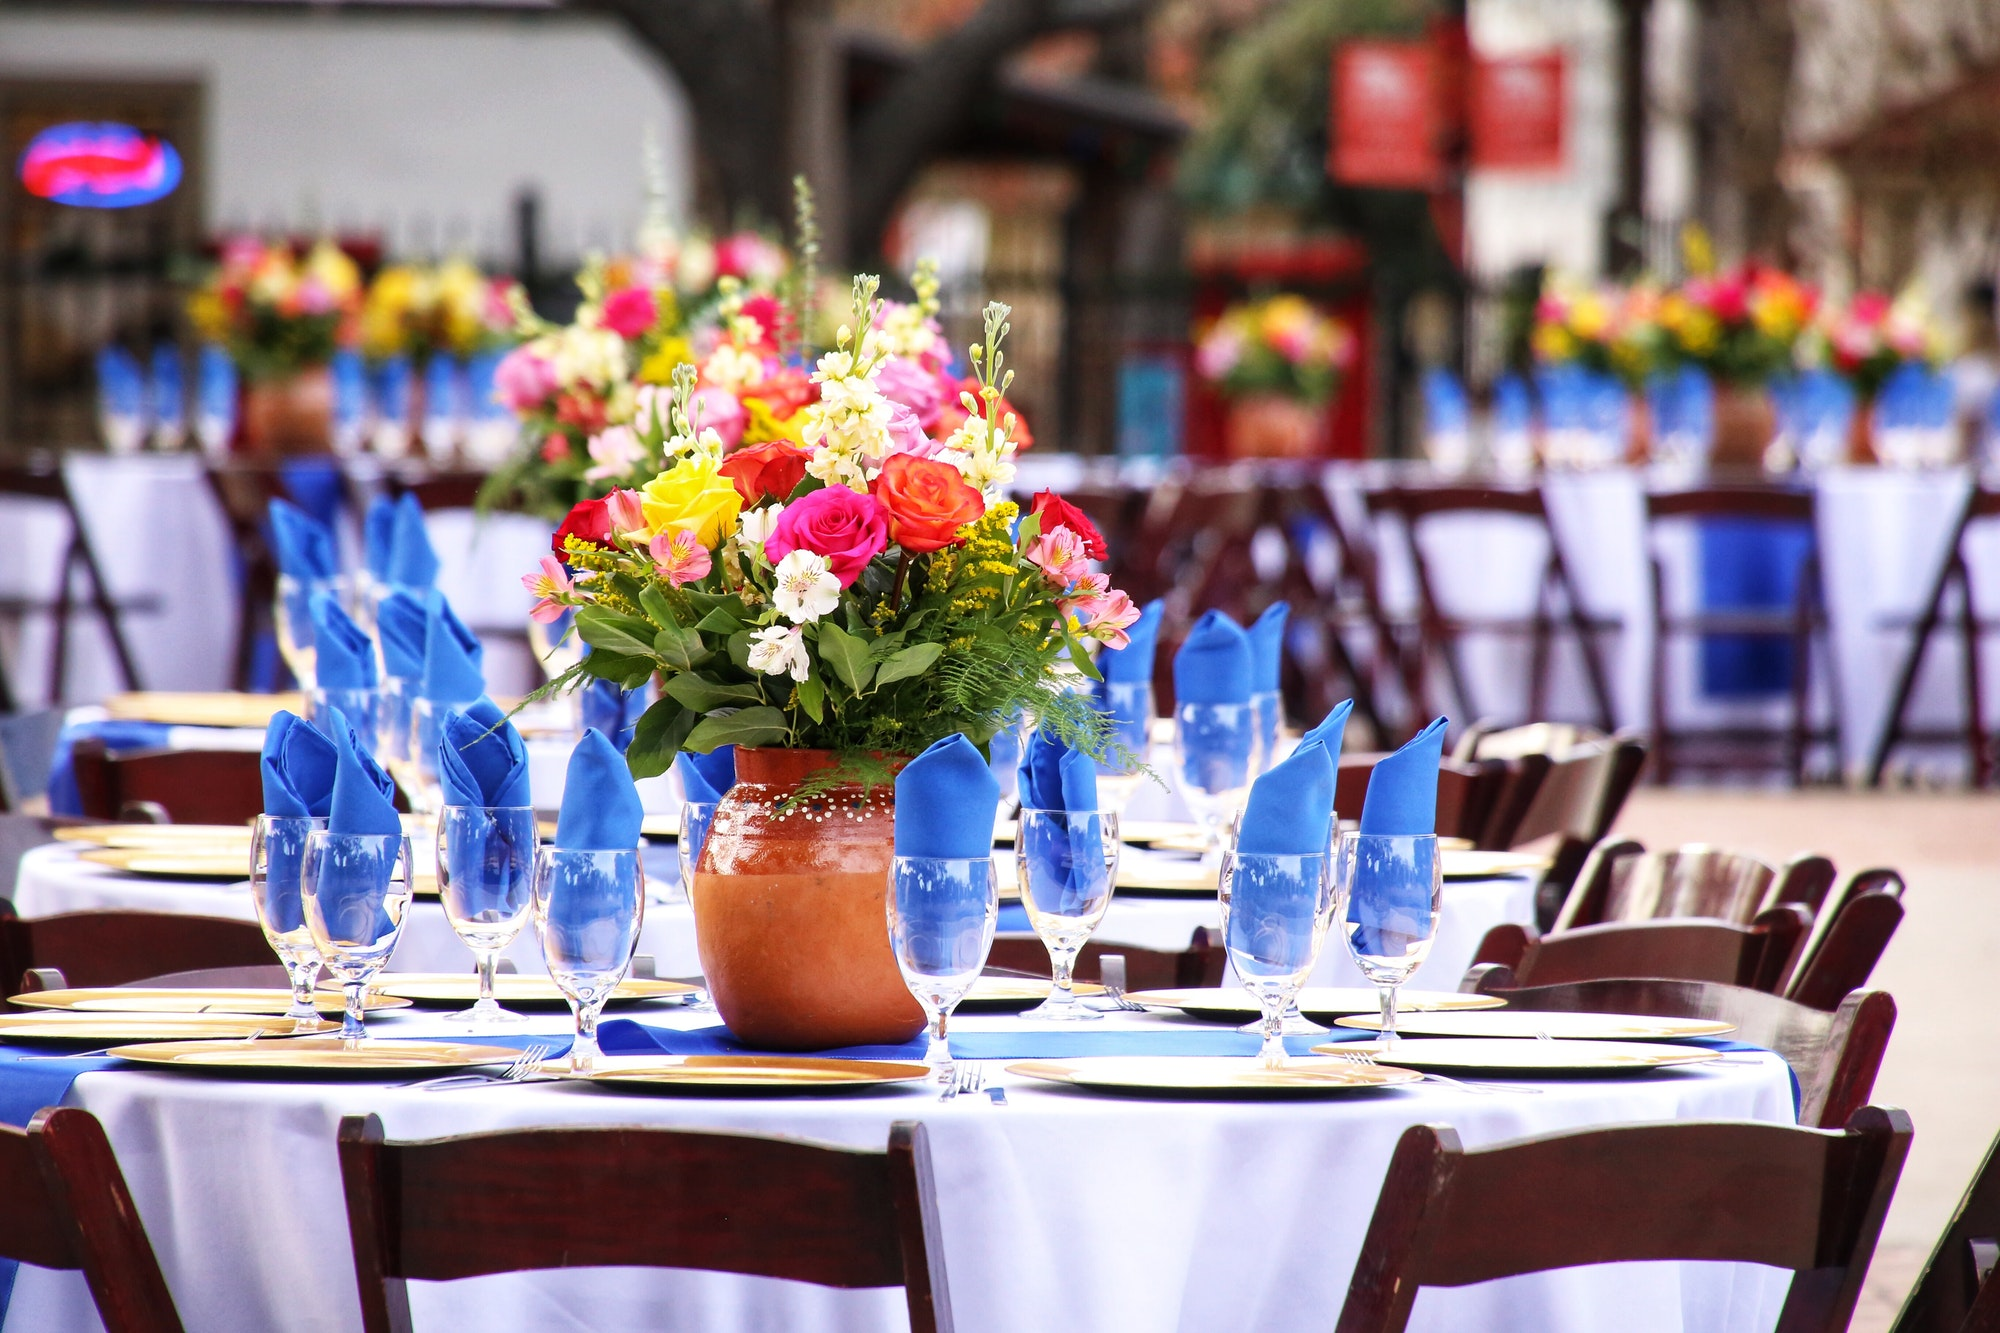 Beautiful table setting at an outdoor wedding venue.